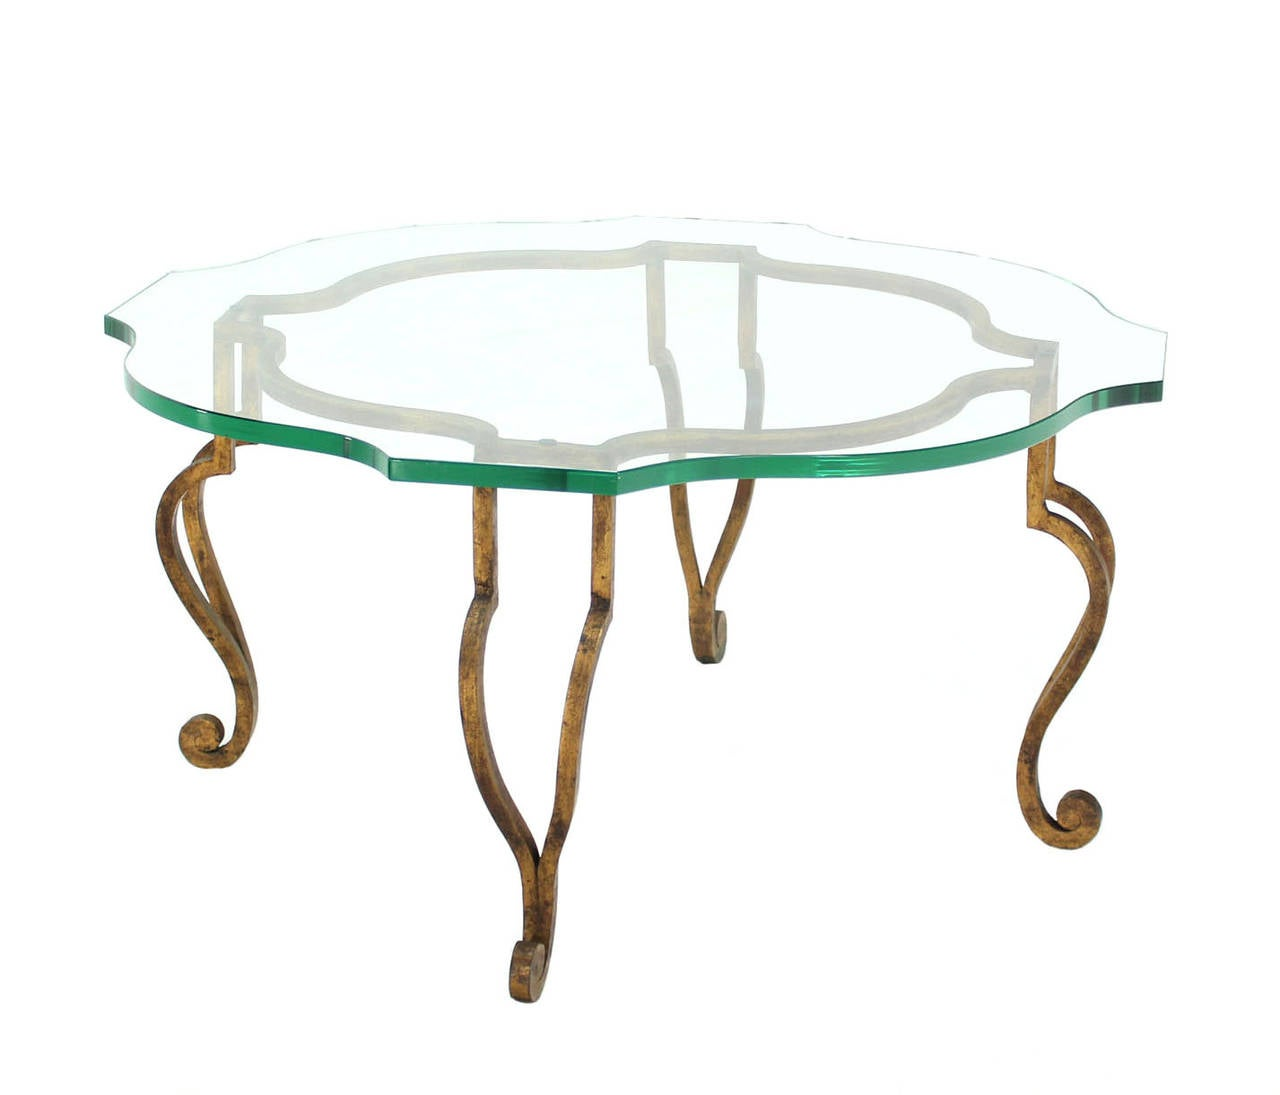 Figural wrought iron base coffee table with thick glass top at 1stdibs Wrought iron coffee table bases